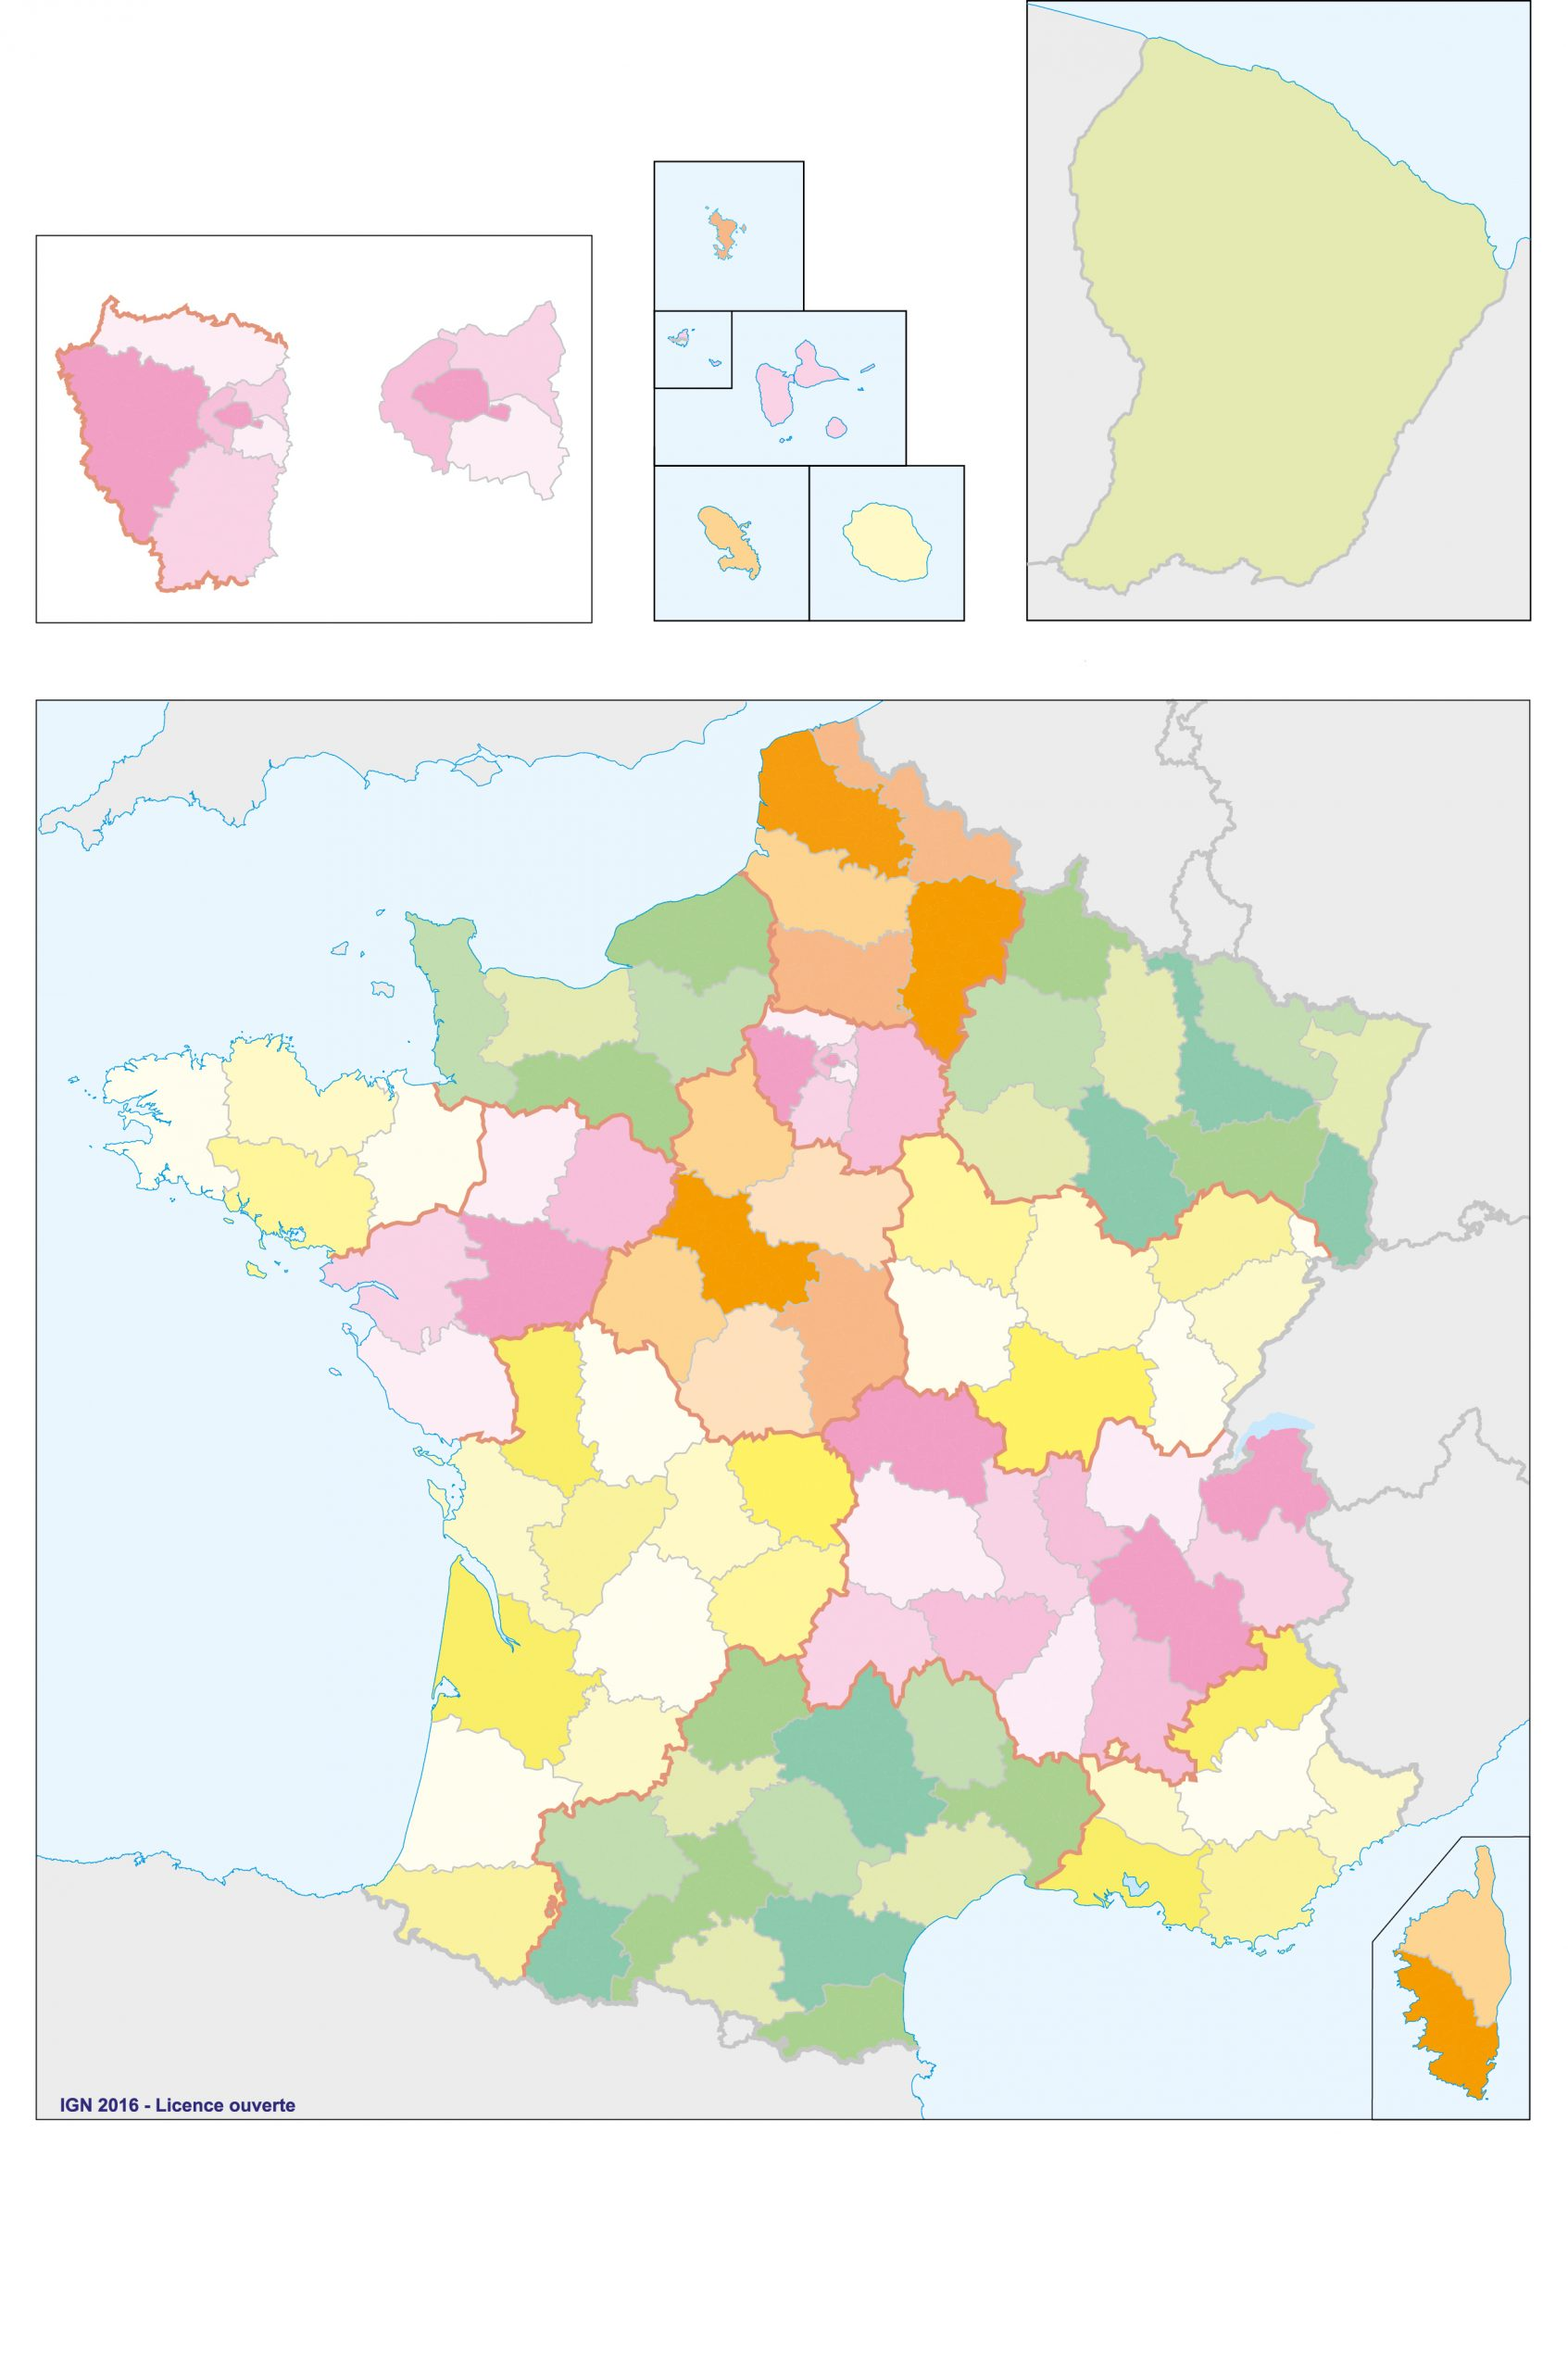 Fonds De Cartes | Éducation destiné Carte De Departement A Imprimer